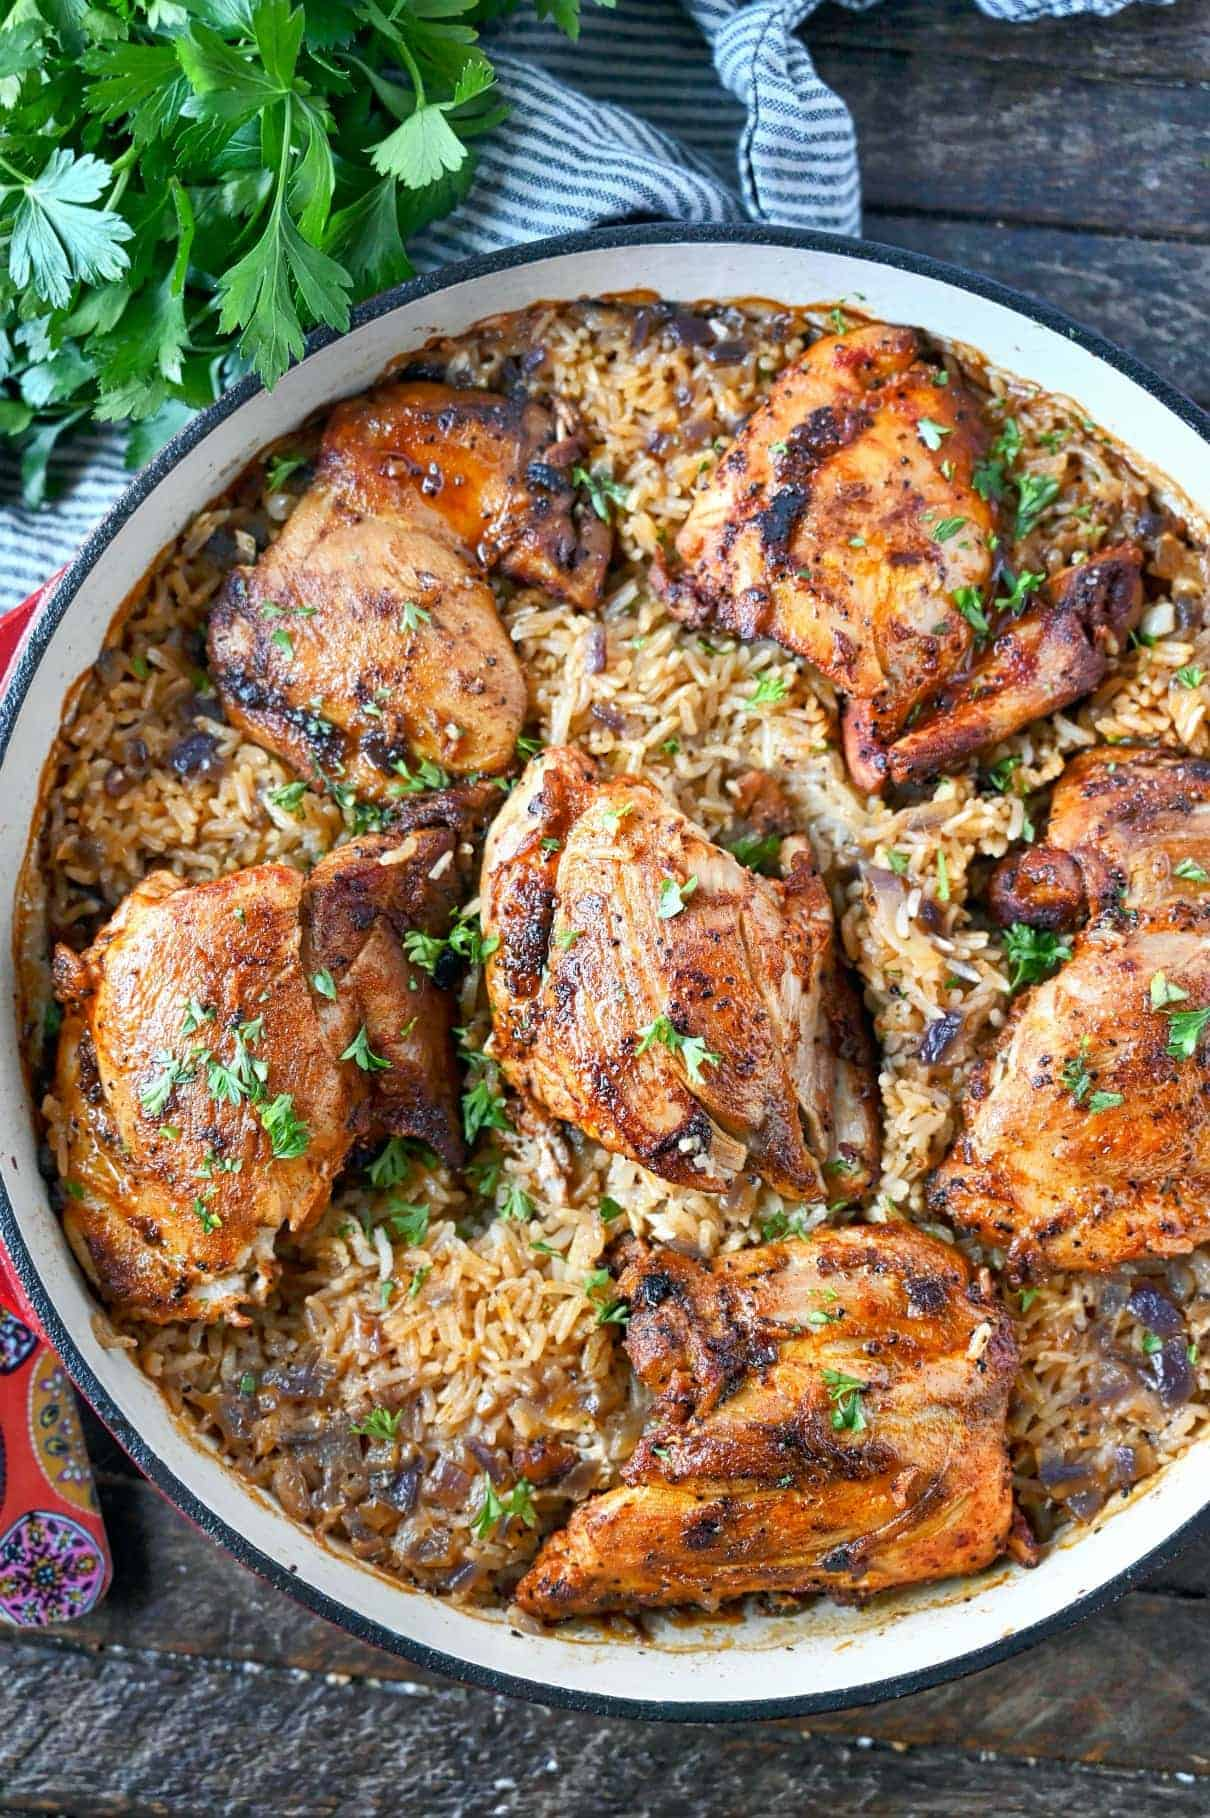 Six paprika chicken thighs in a bed of rice in a red skillet.